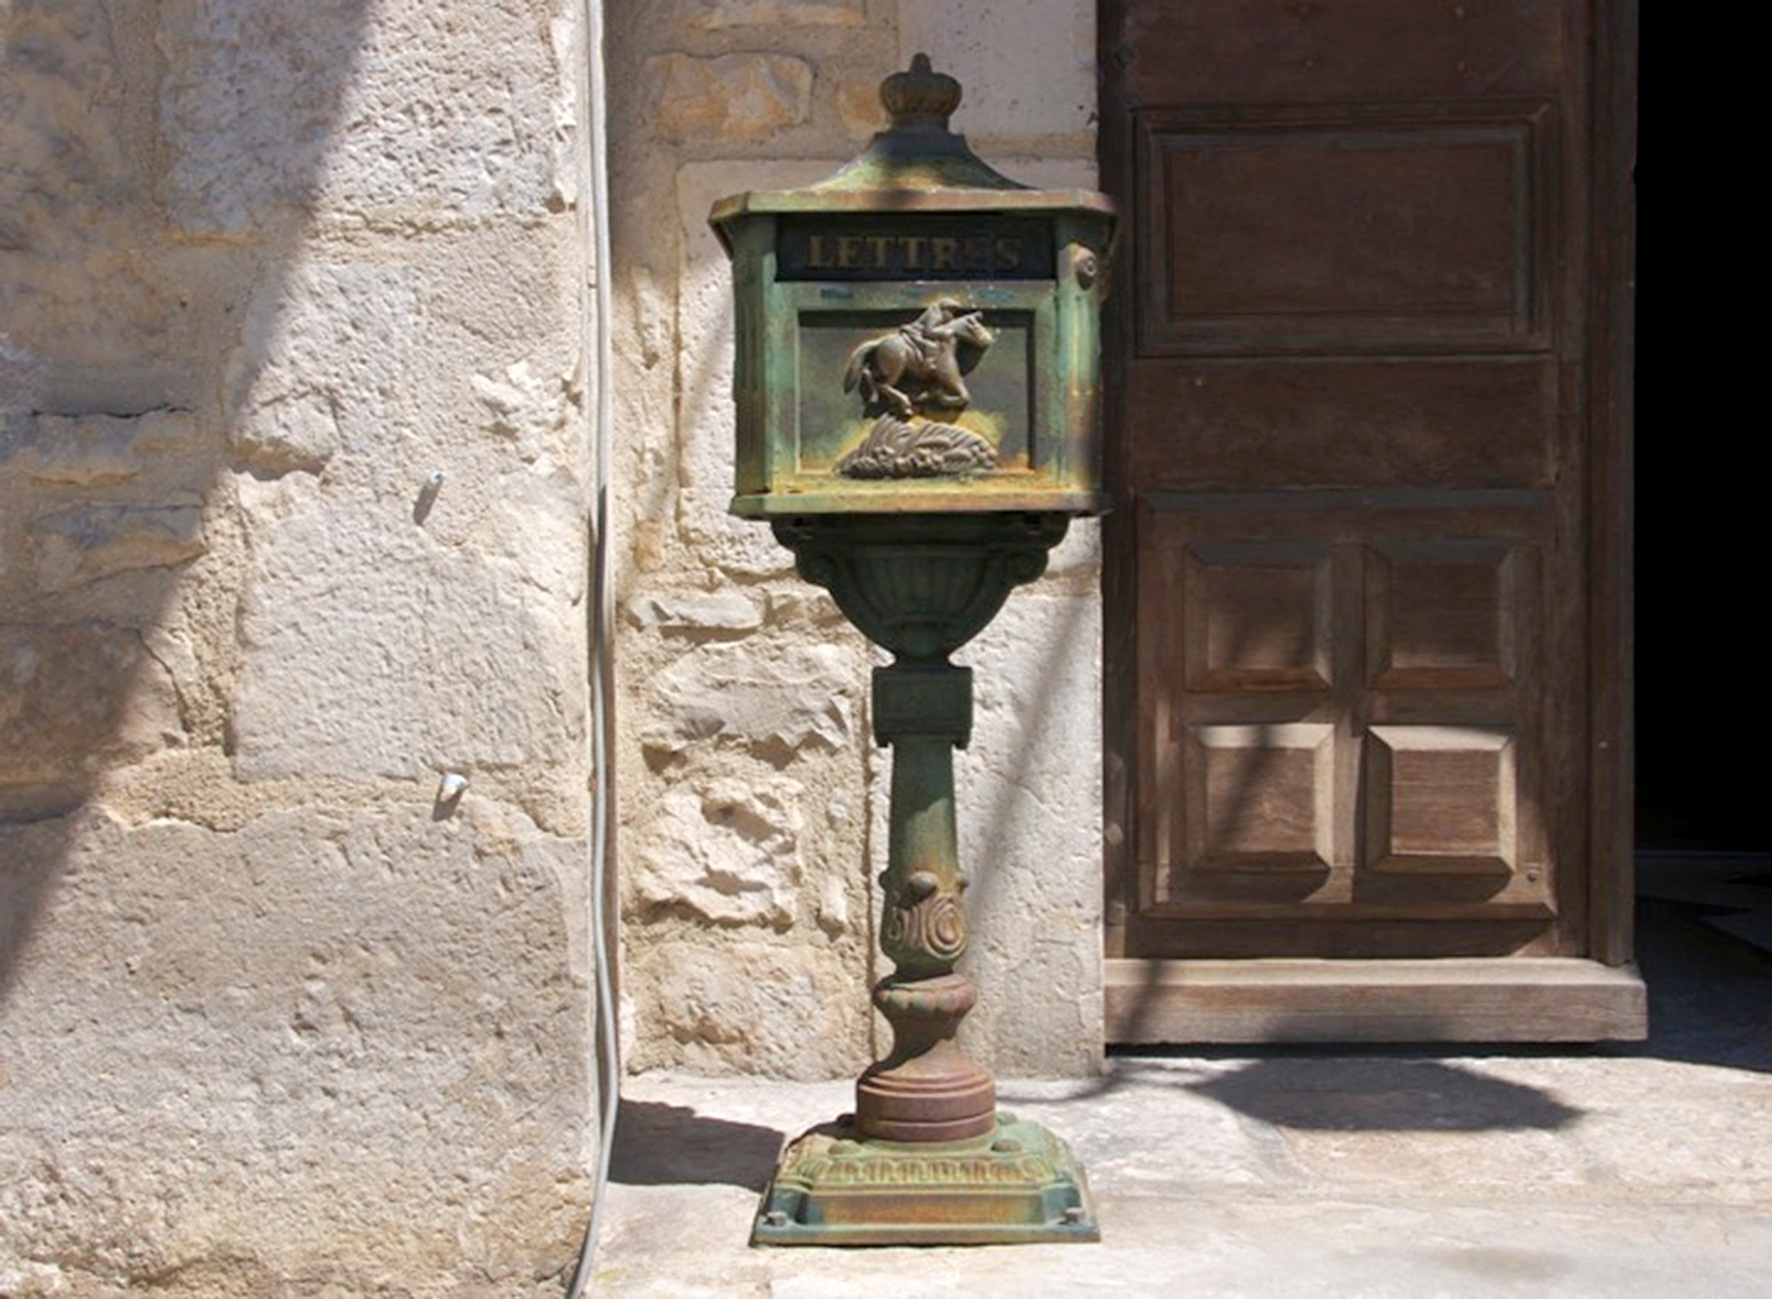 Letterbox, Caylus, France by kfboland125